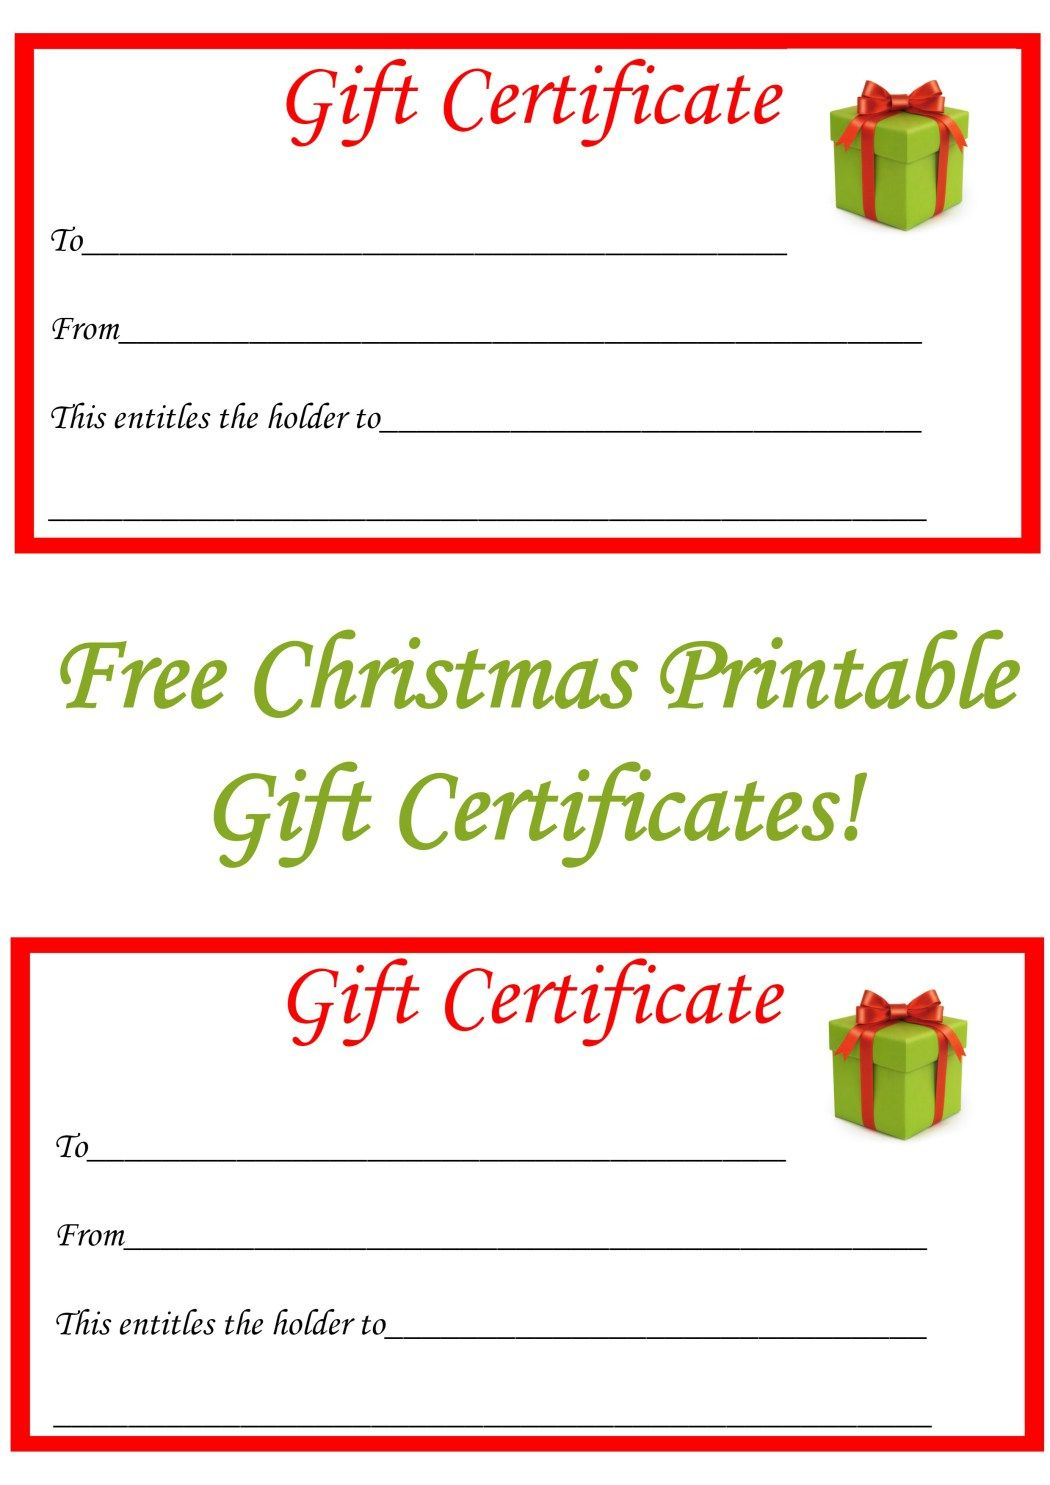 Free Christmas Printable Gift Certificates The Diary Of A Christmas Gift Certificate Template Holiday Gift Certificates Free Printable Gift Certificates